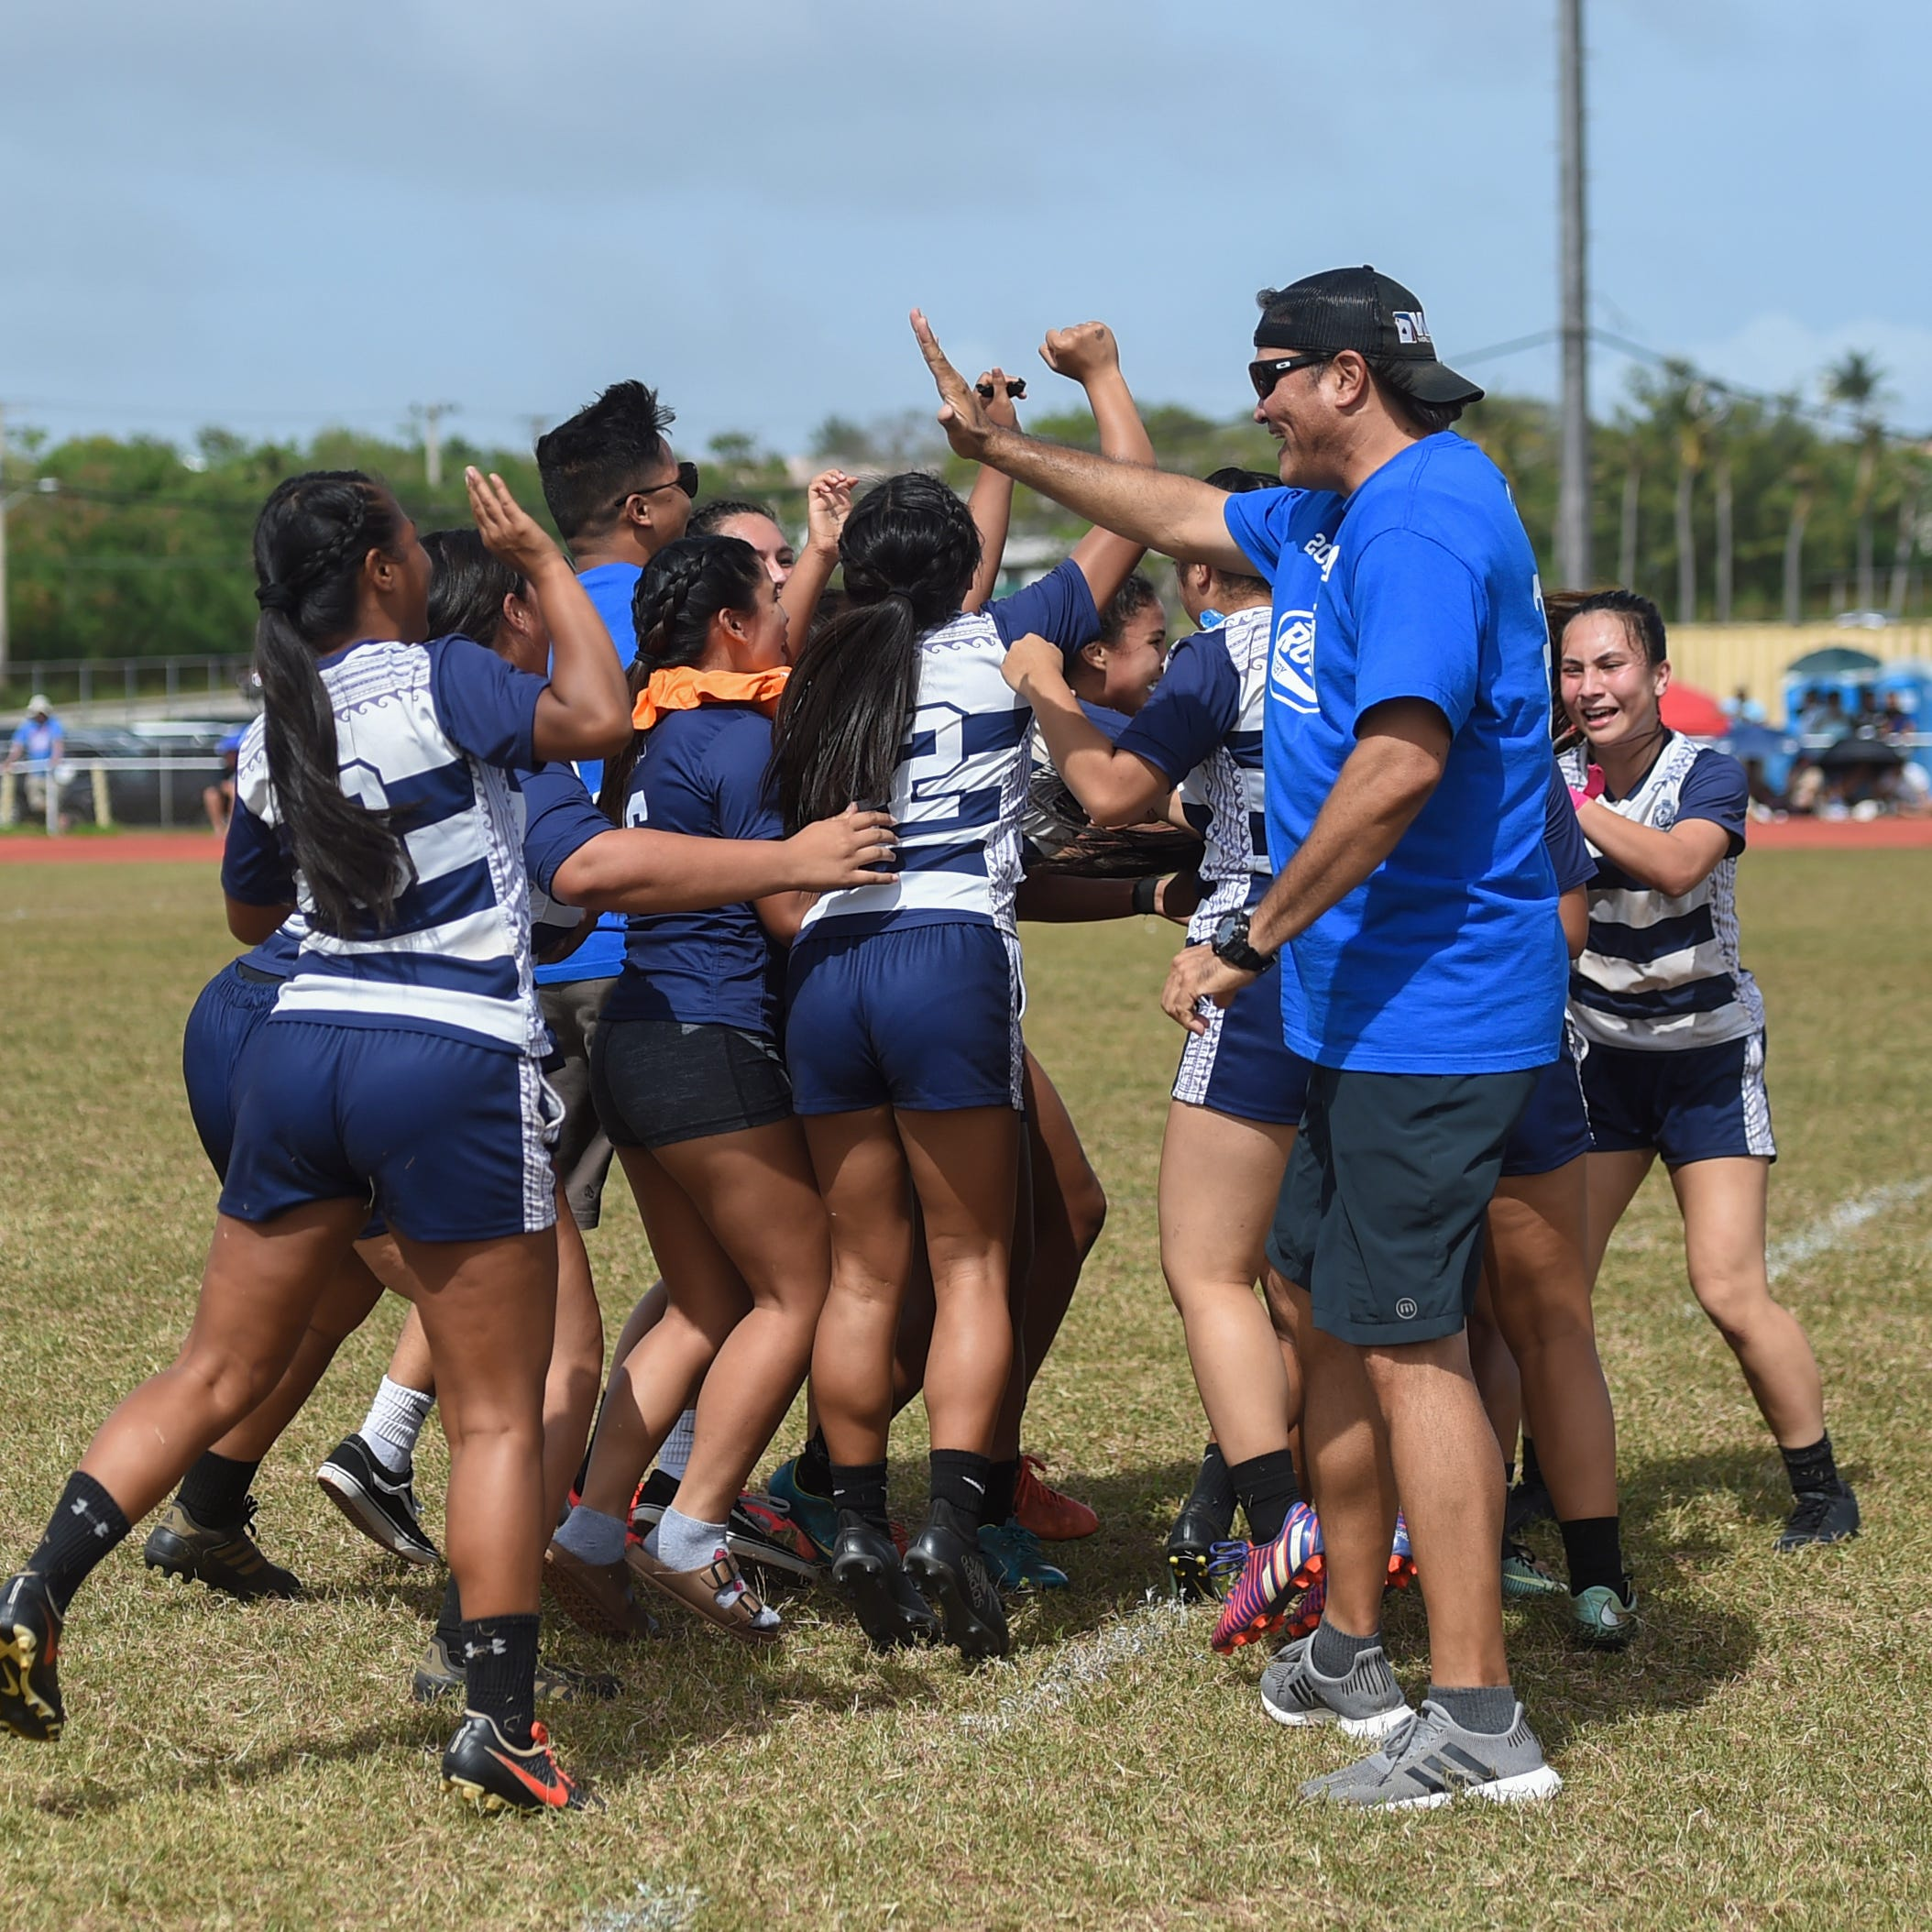 Royals have Faith, rally to beat GW for rugby title